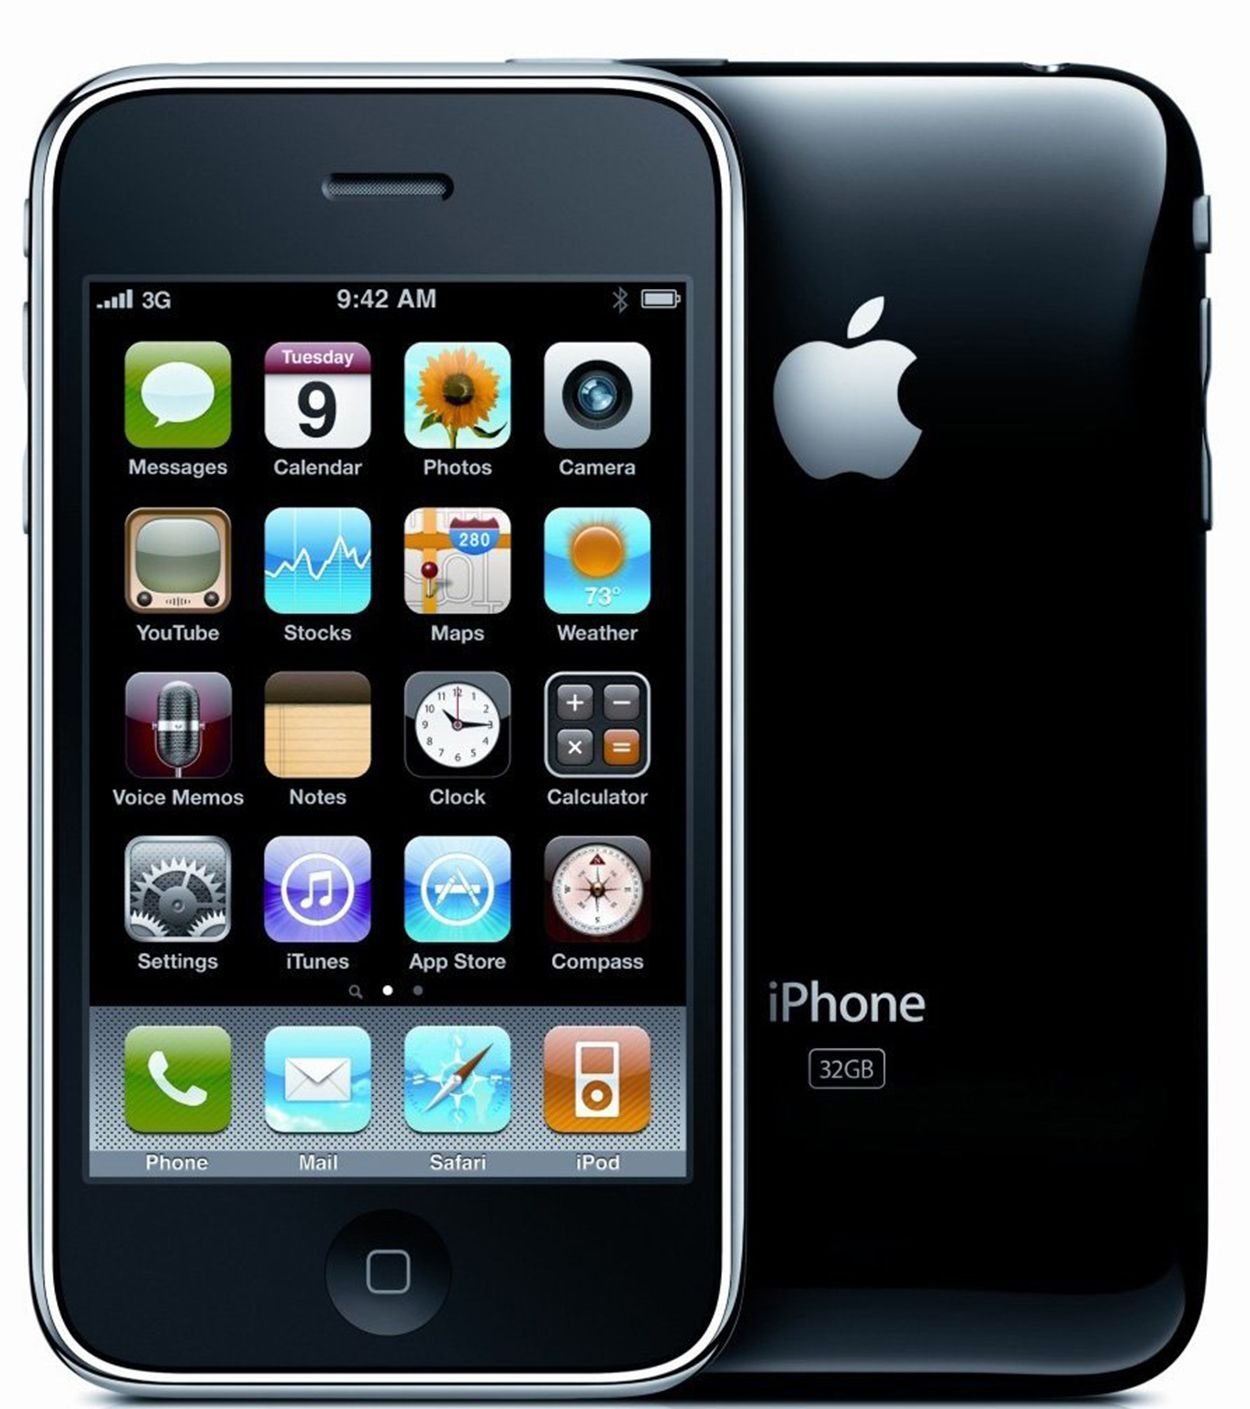 iphone 3g hardware and software features. Black Bedroom Furniture Sets. Home Design Ideas